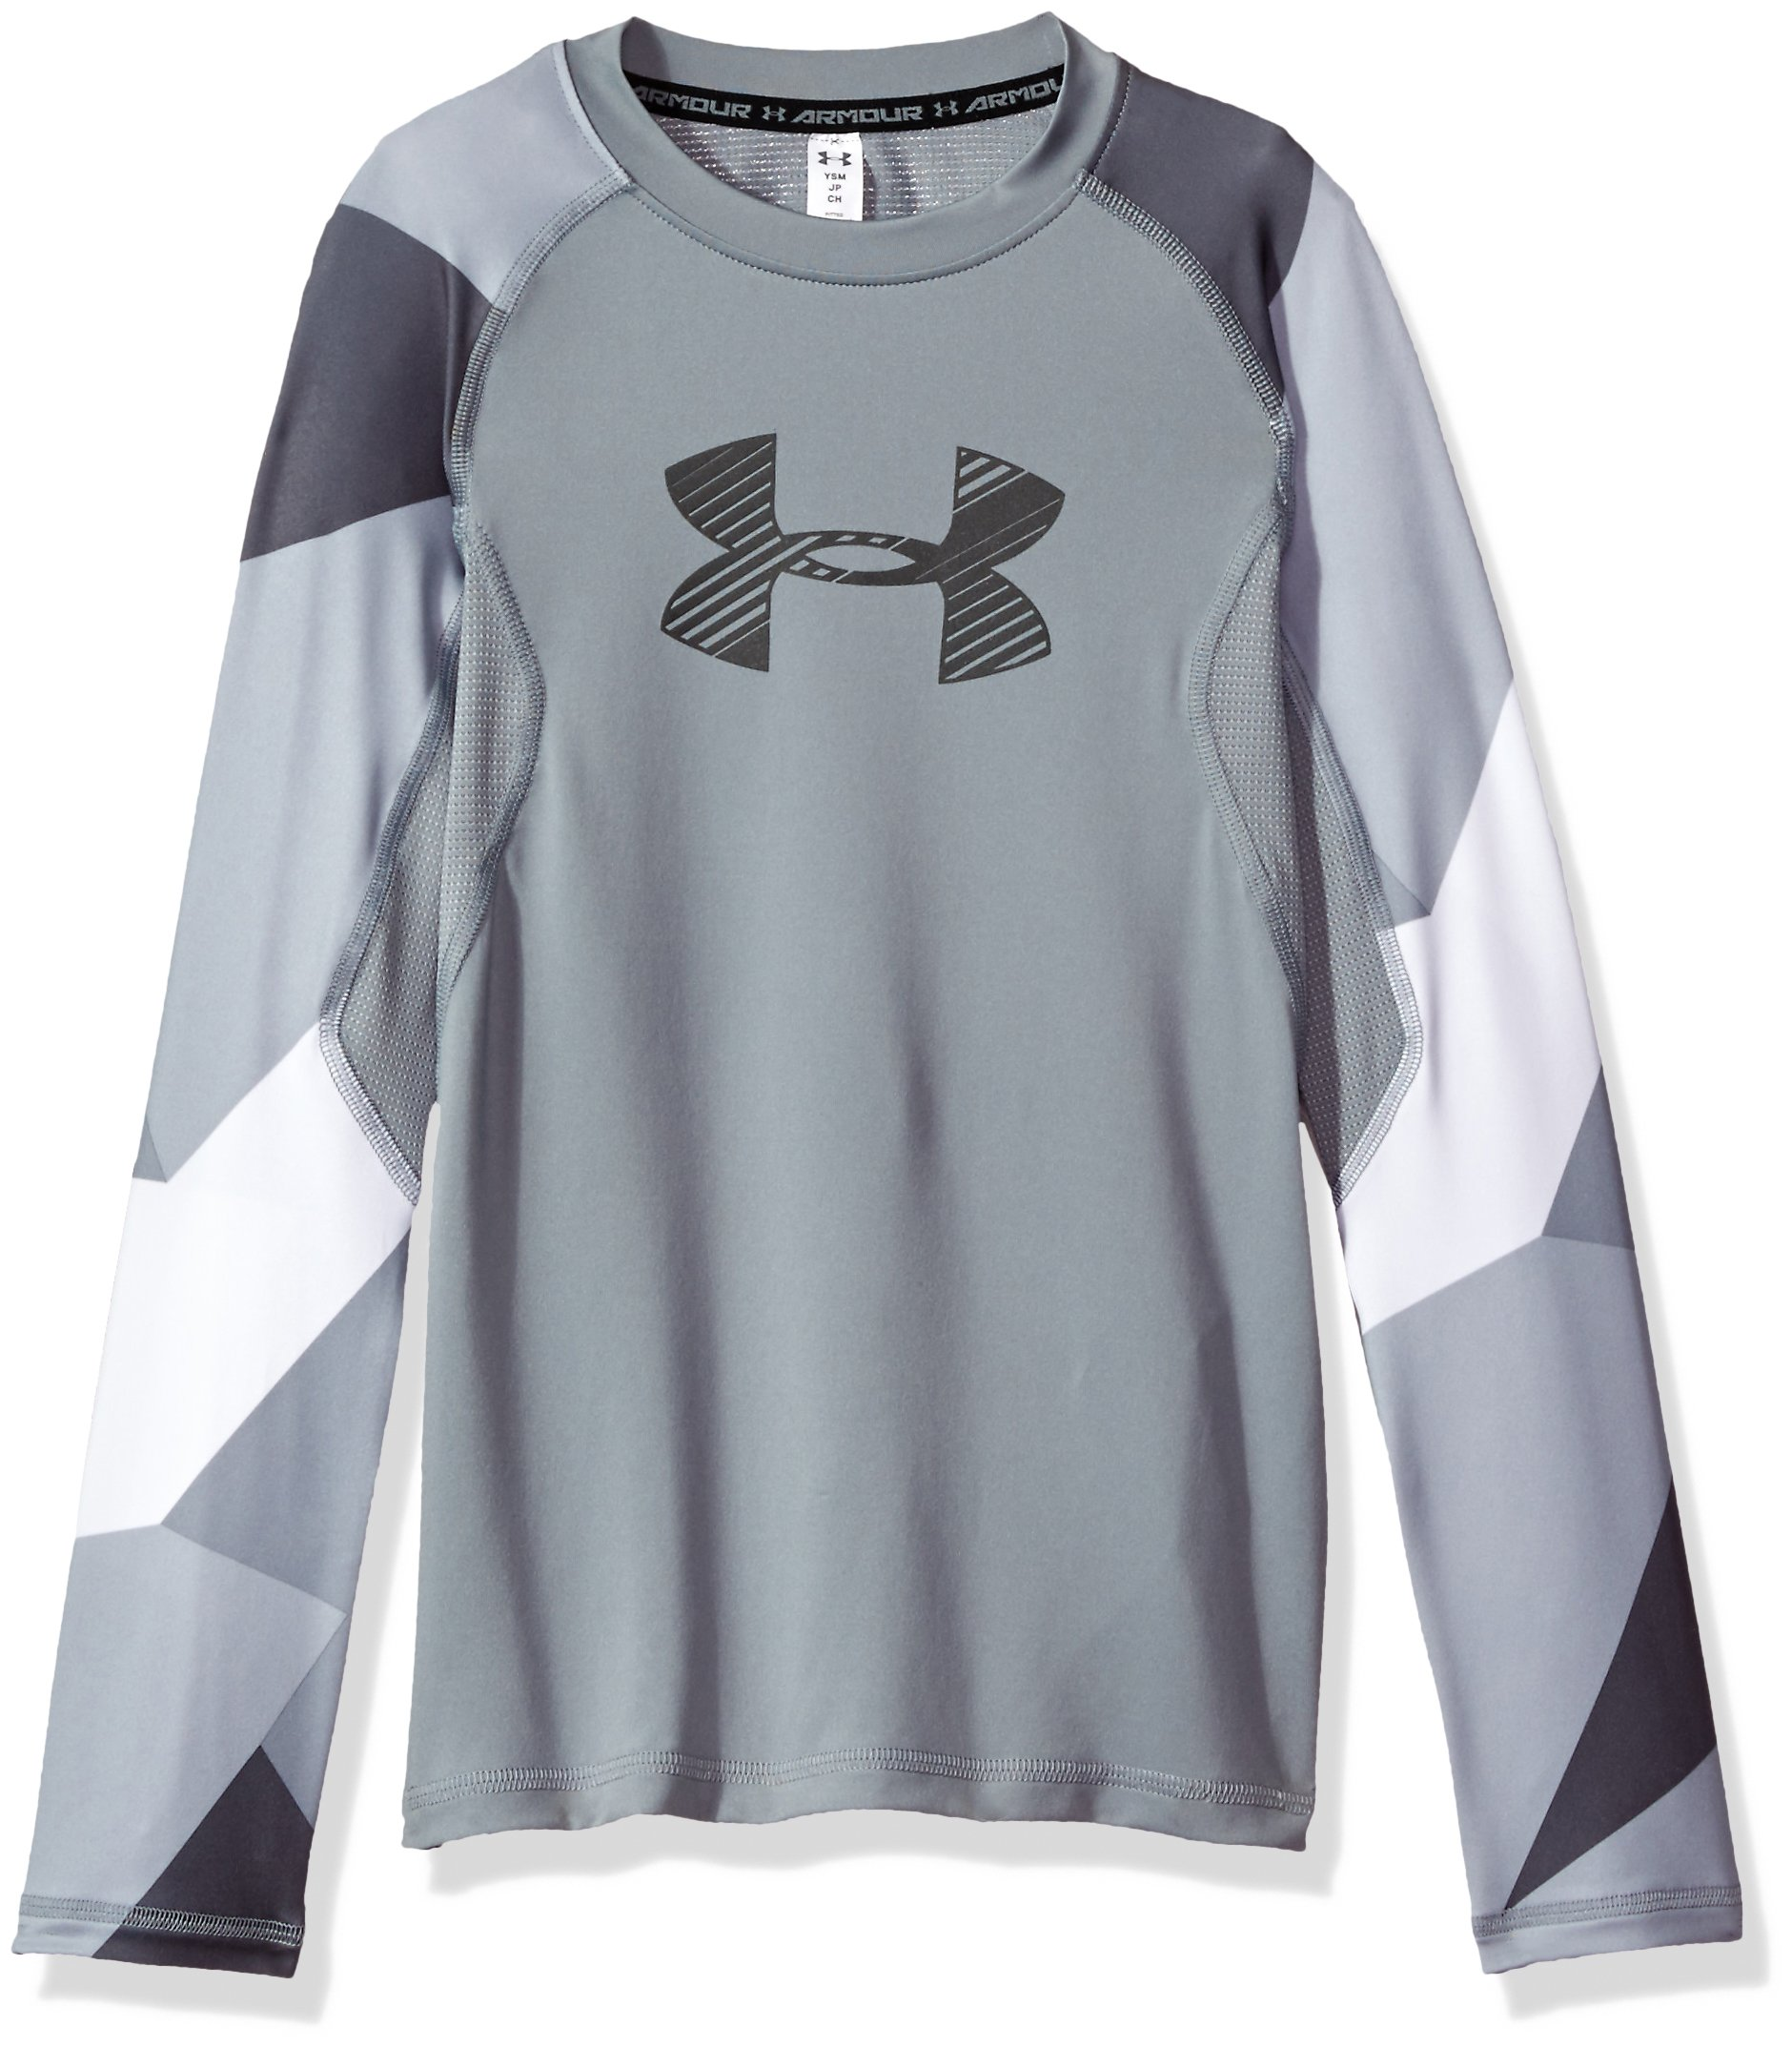 Under Armour Boys' HeatGear Armour Printed Long Sleeve,Steel (035)/Graphite, Youth Small